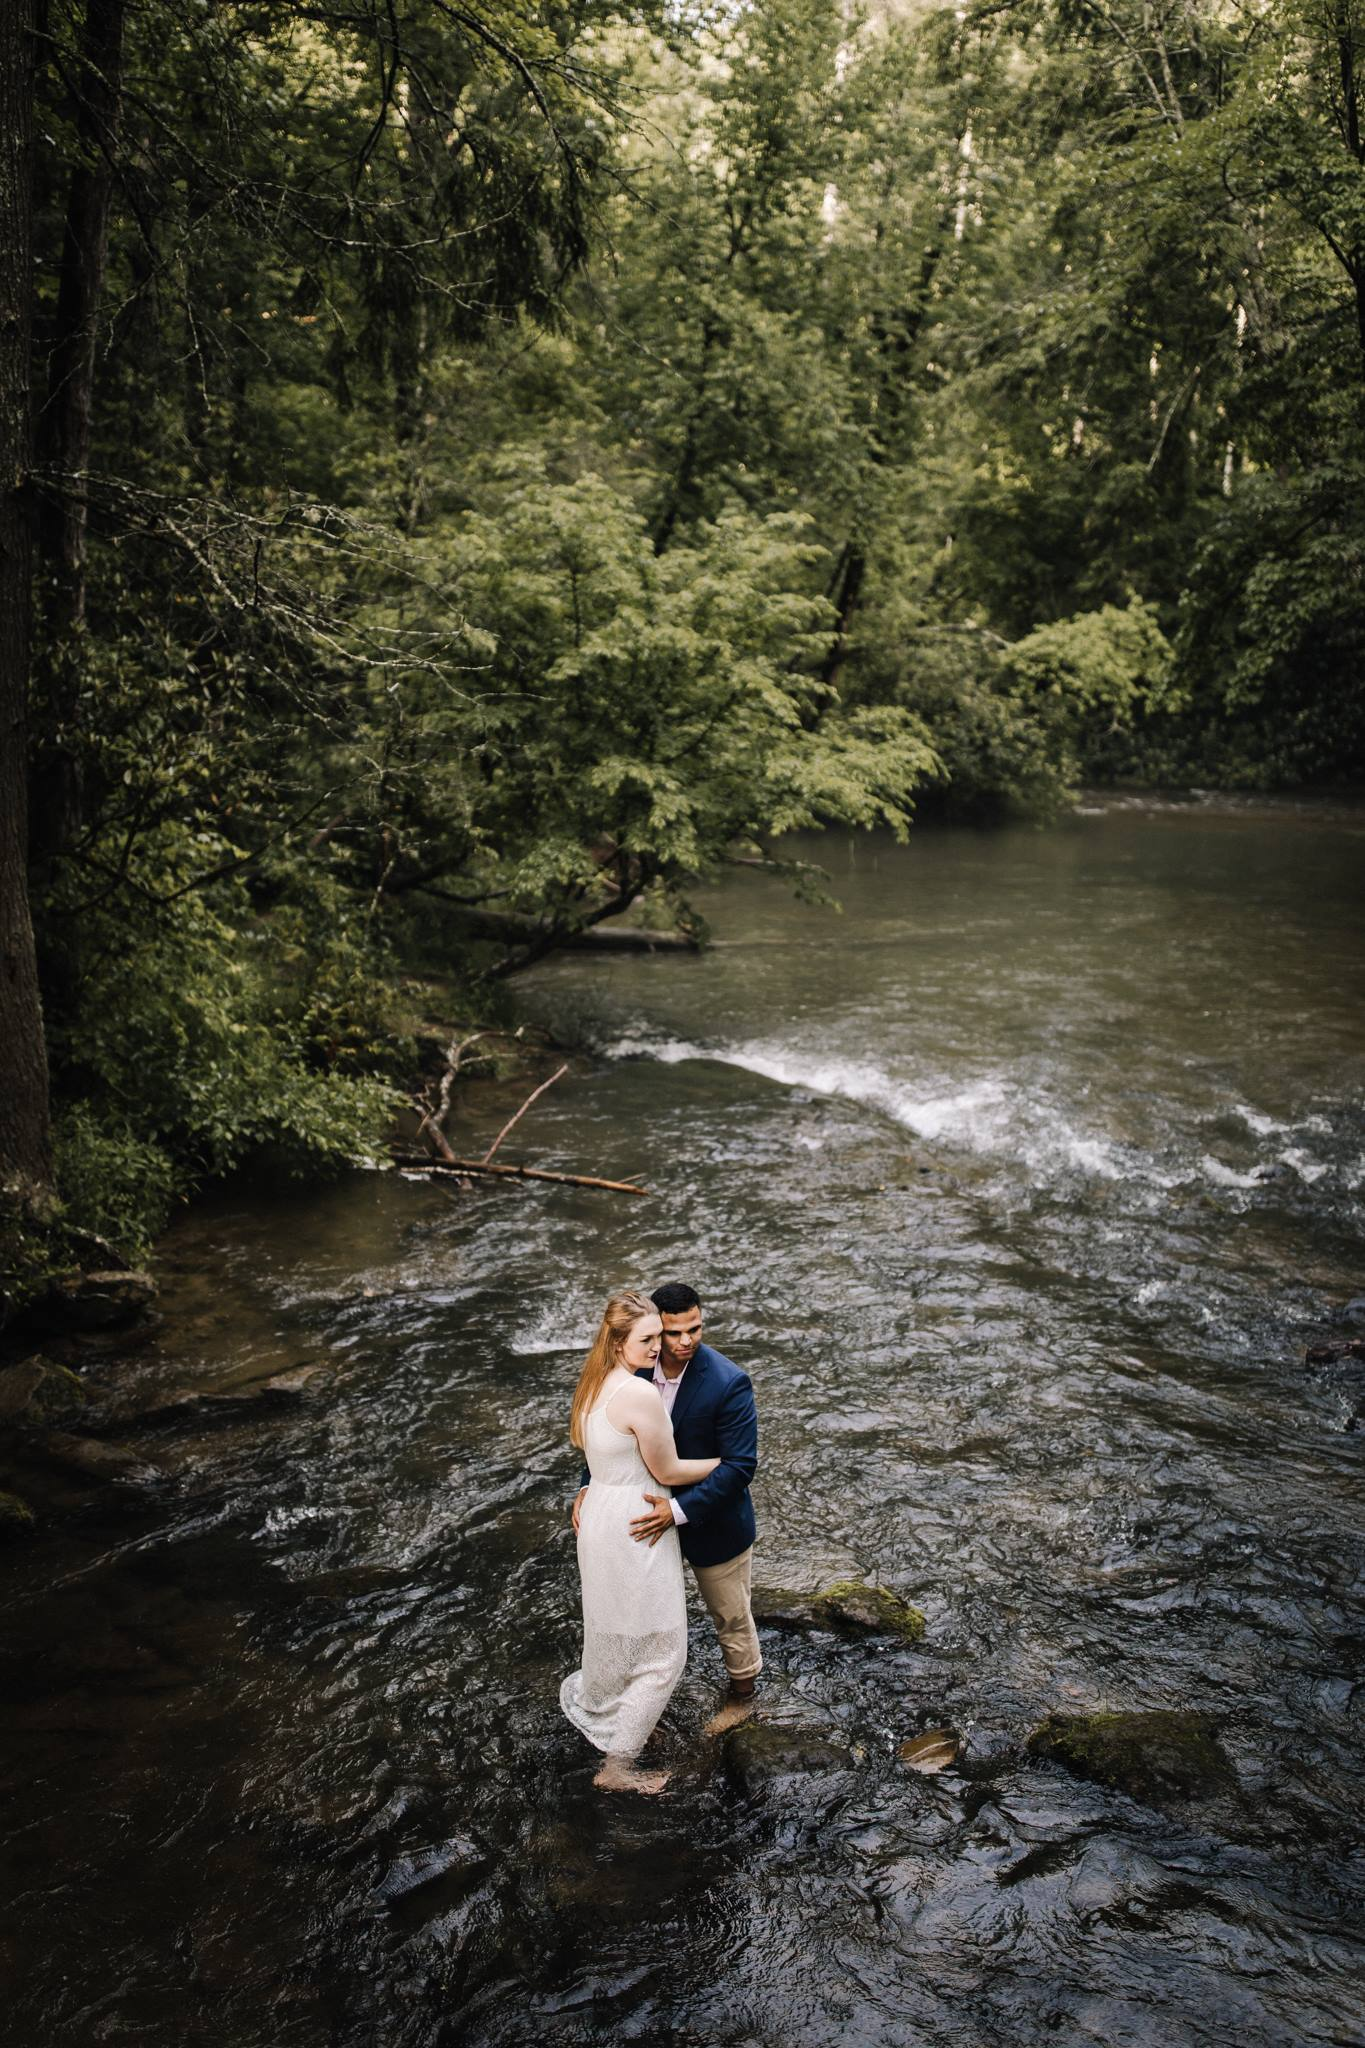 billie-shaye style photography - www.billieshayestyle.com - smokey mountain cades cove summer rain engagement session - gatlinburg tennessee-29.jpg